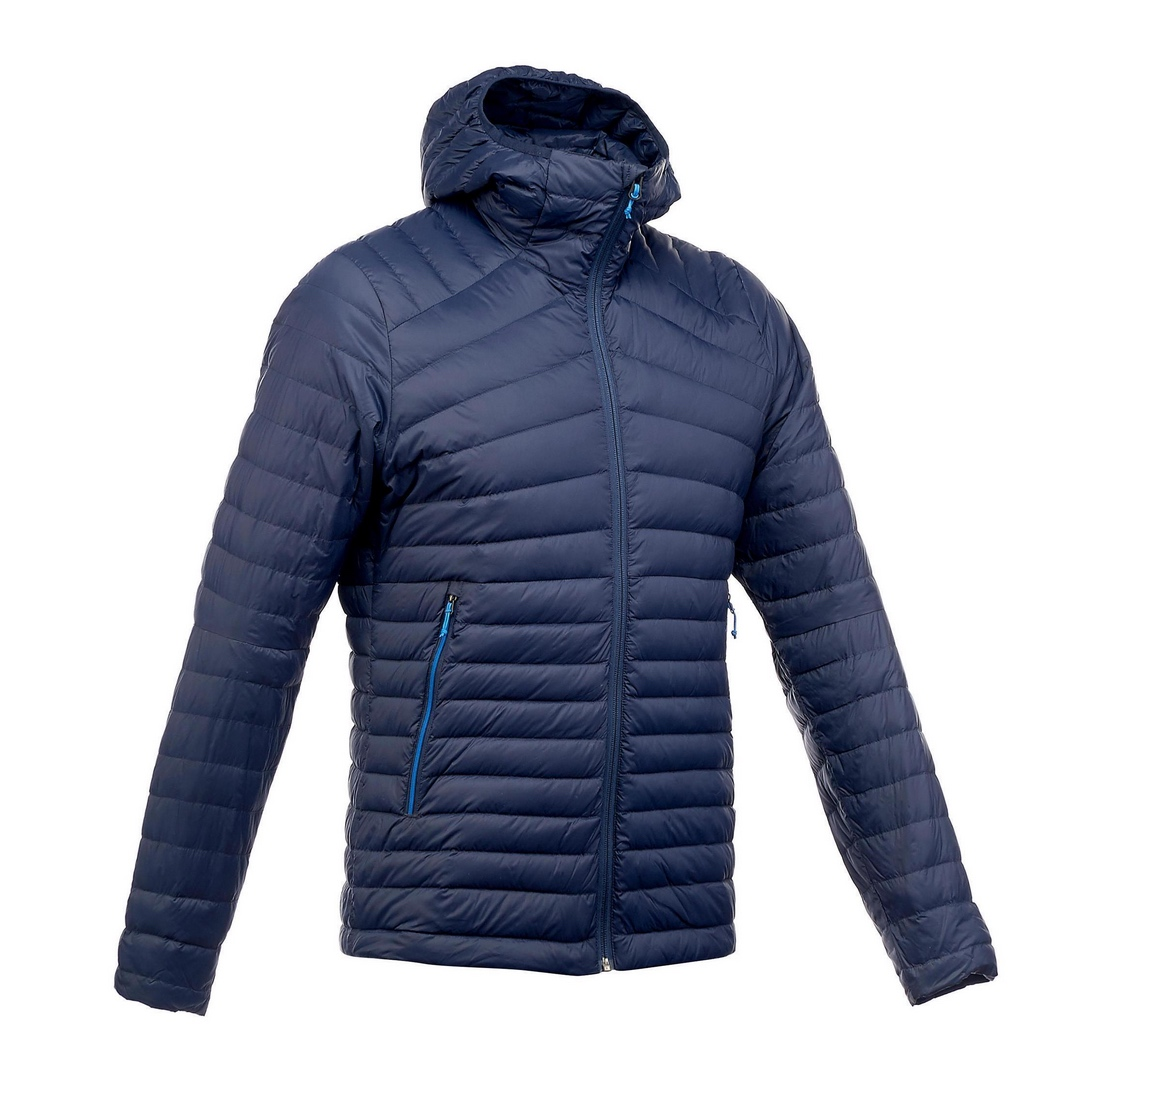 online here latest trends street price Decathlon jackets – Classic Sailor